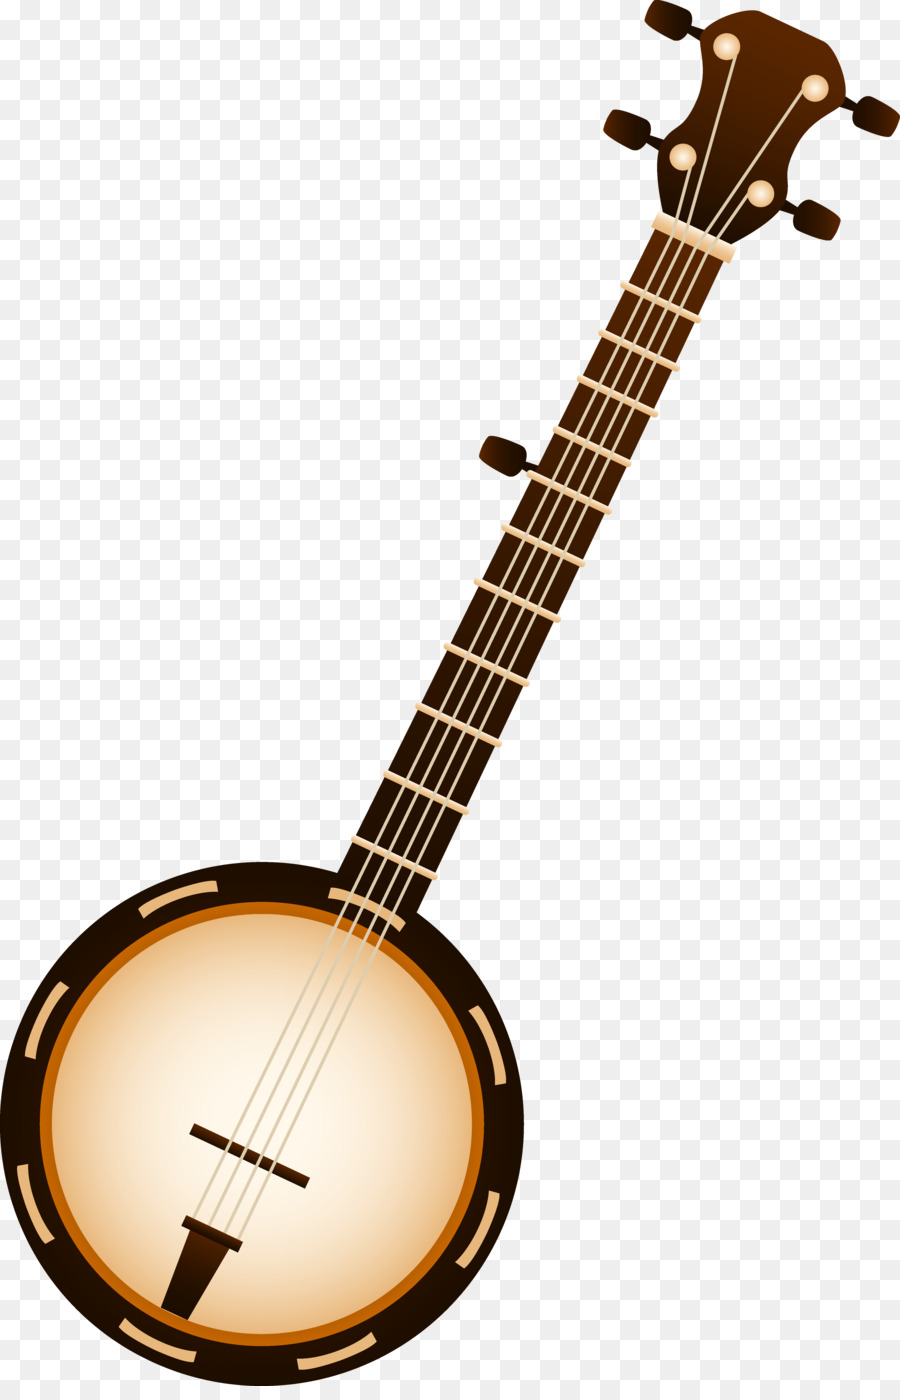 banjo musical instruments string instruments bluegrass clip art rh kisspng com bluegrass clip art free bluegrass music instruments clipart